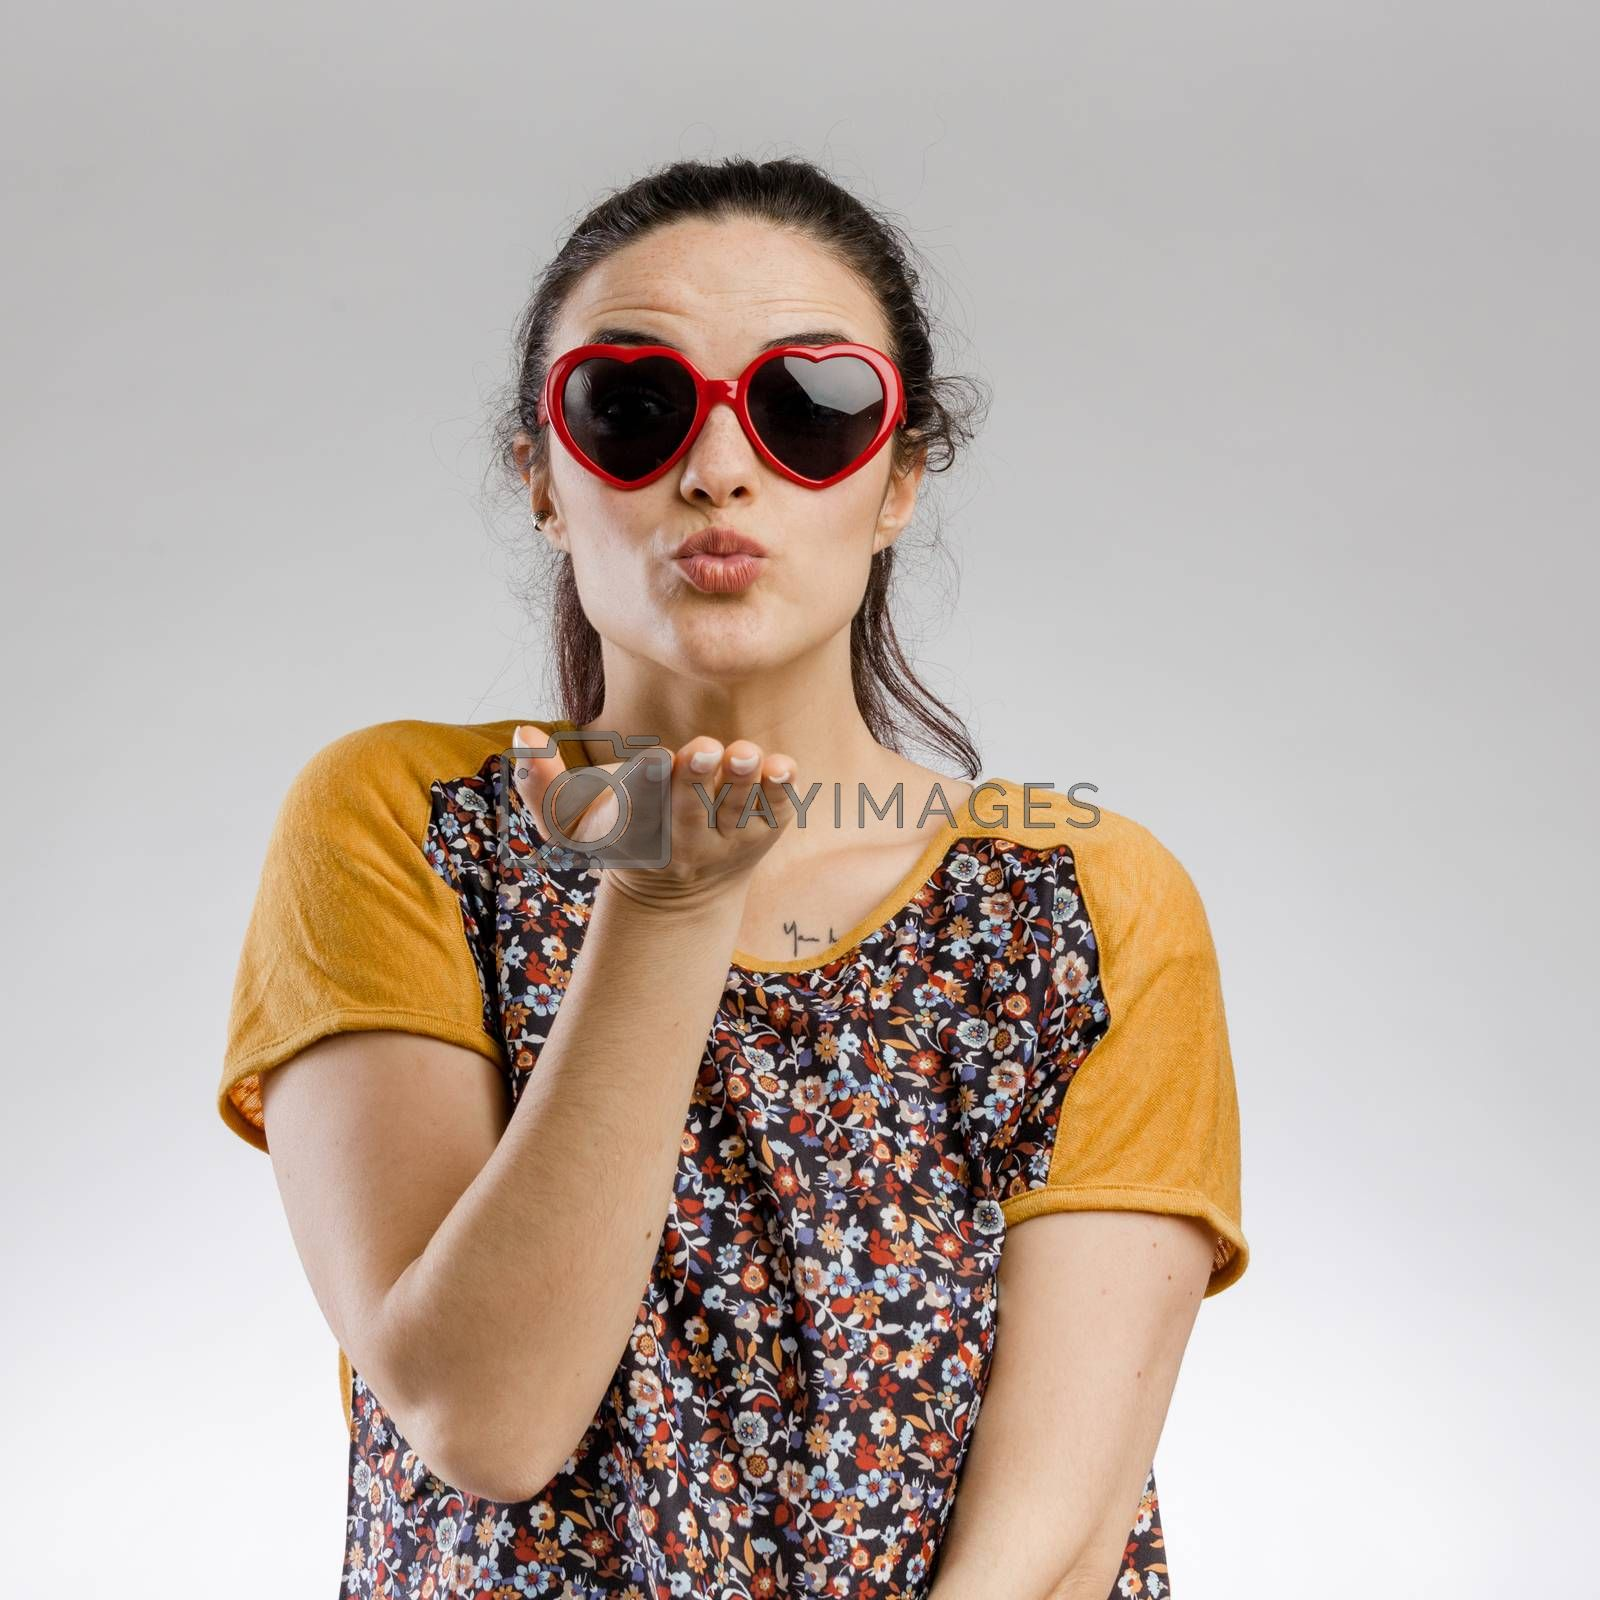 Portrait of a cute brunnet woman wearing sunglasses